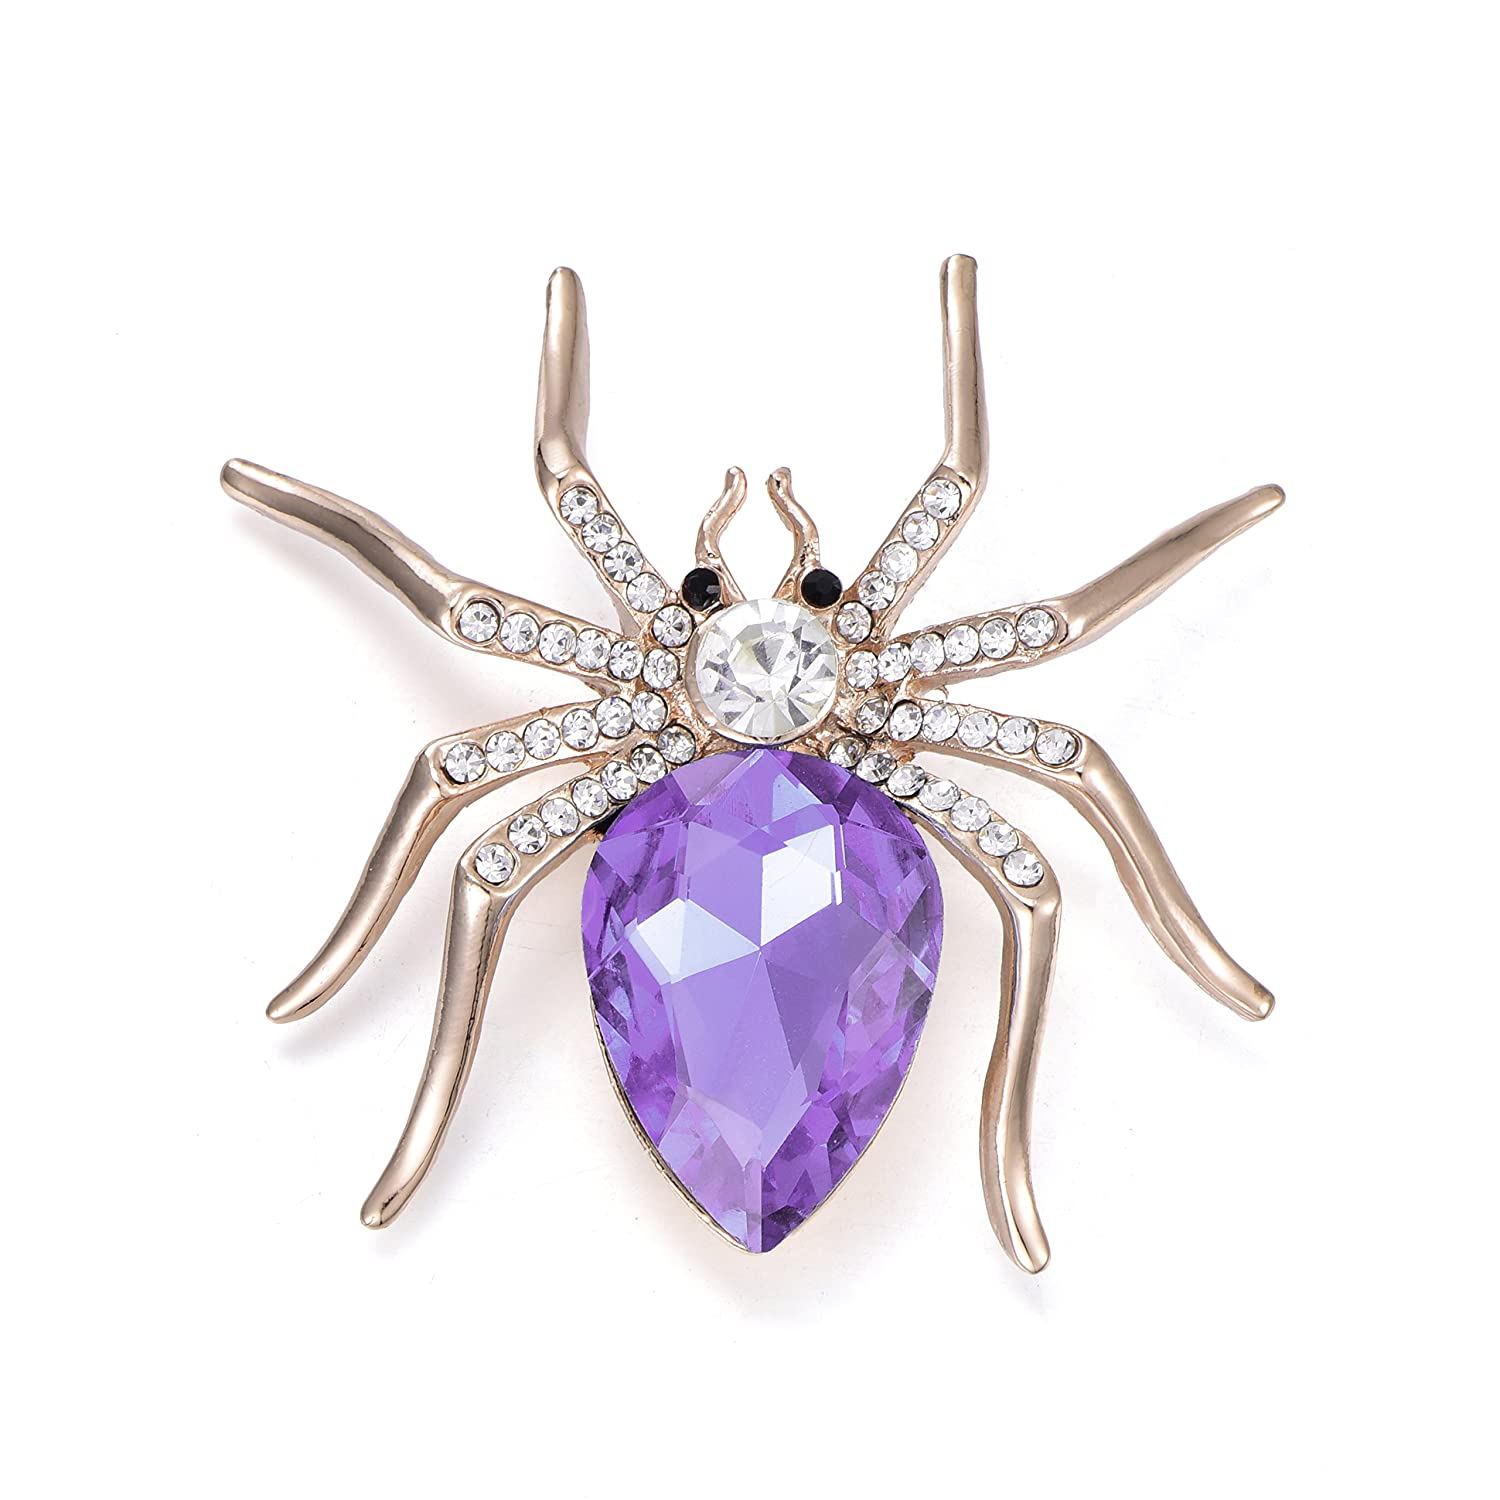 online diamond eco jewels violet brooch christies s nephrite flower amethyst christie and